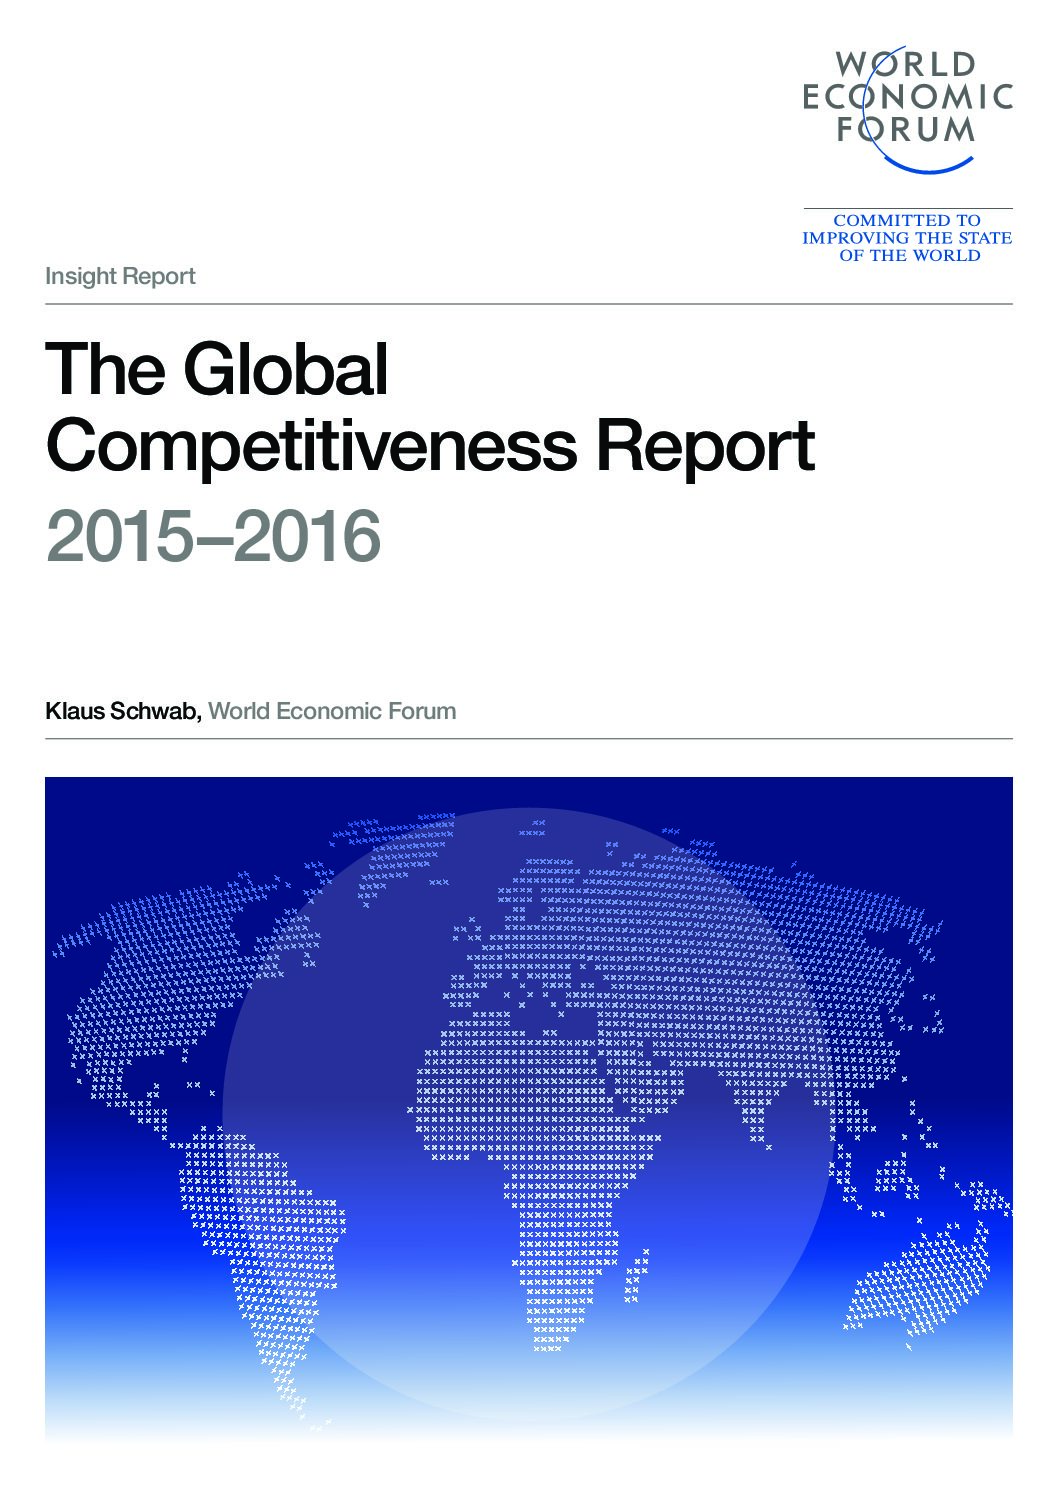 Global Competitiveness Report 2015-2016